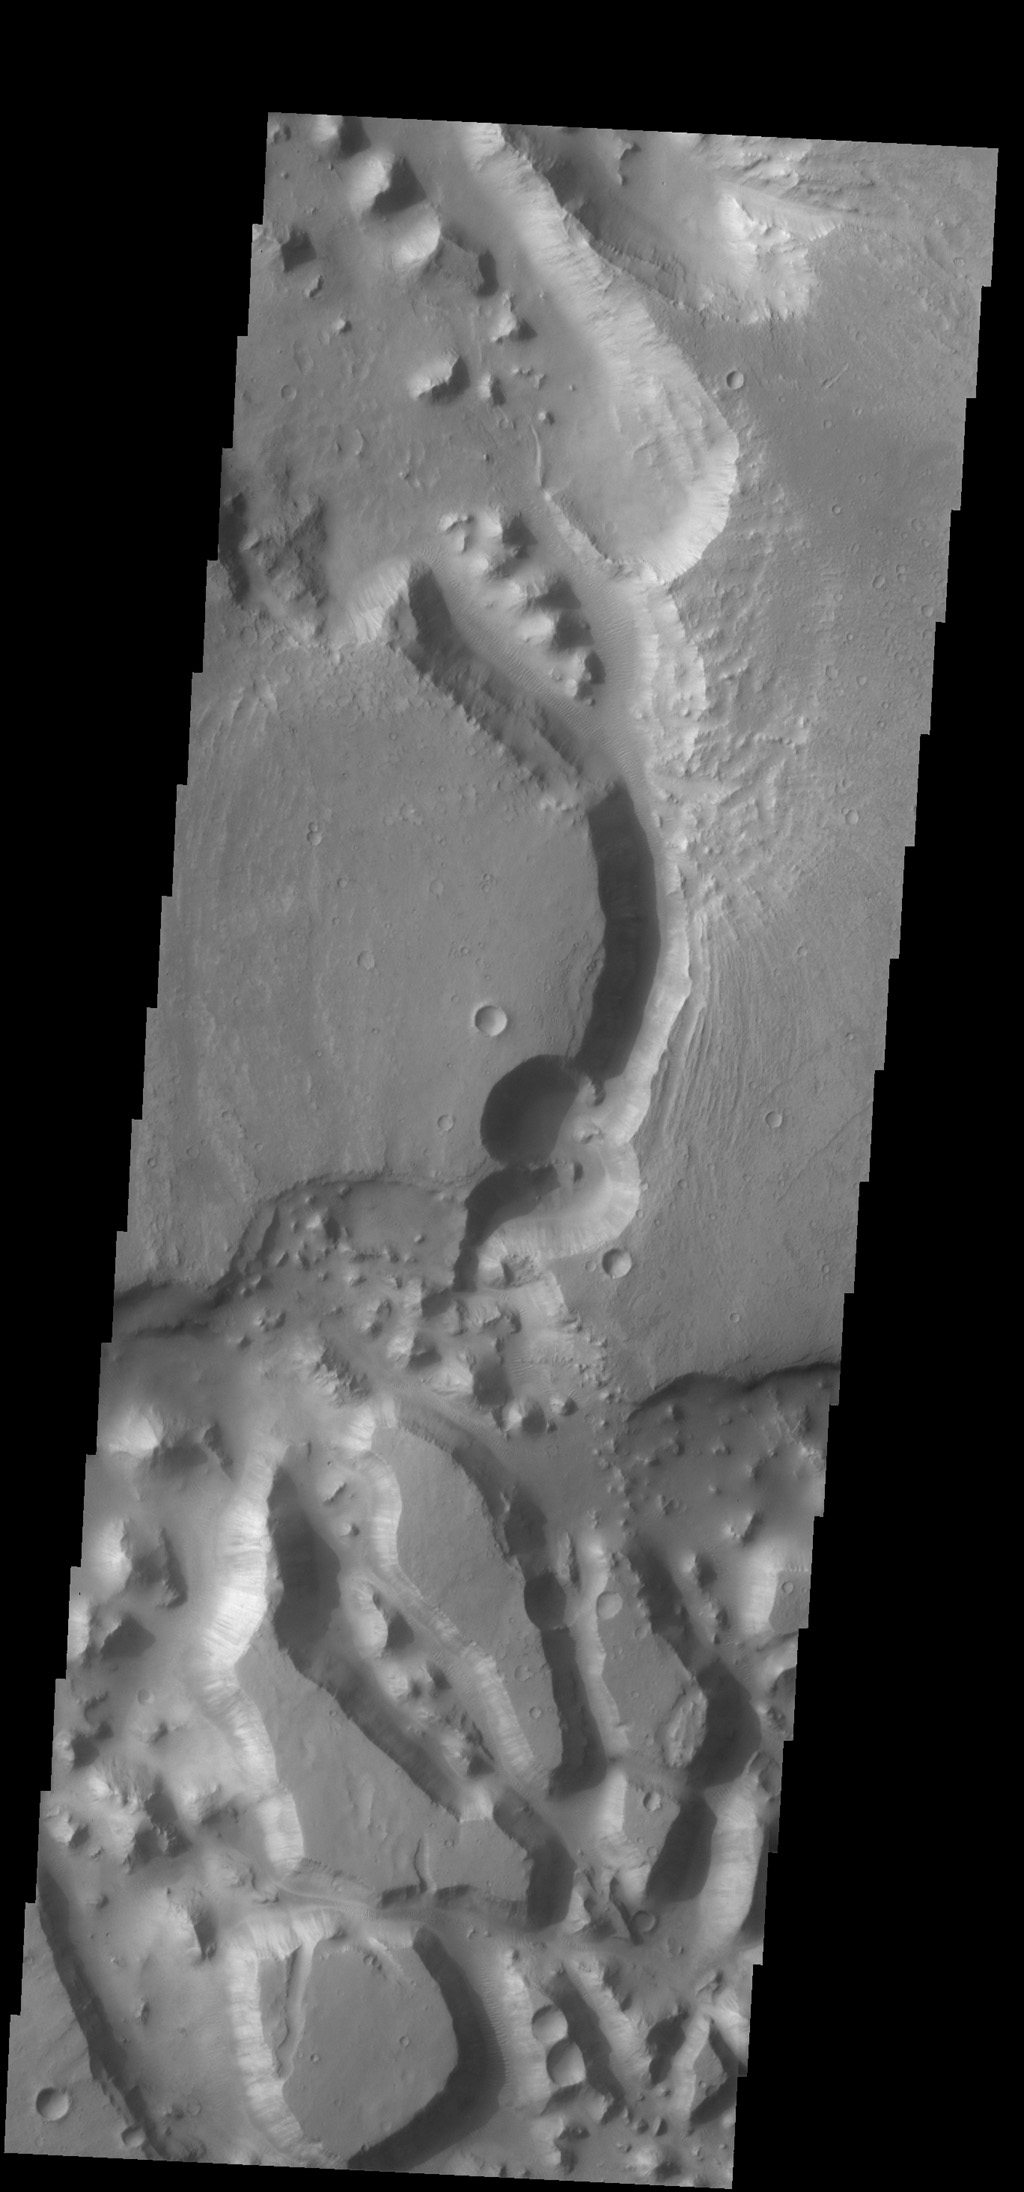 This complex region of channels and chaos is located south of Chia crater and east of the much larger Maja Valles. This image was captured by NASA's 2001 Mars Odyssey spacecraft.